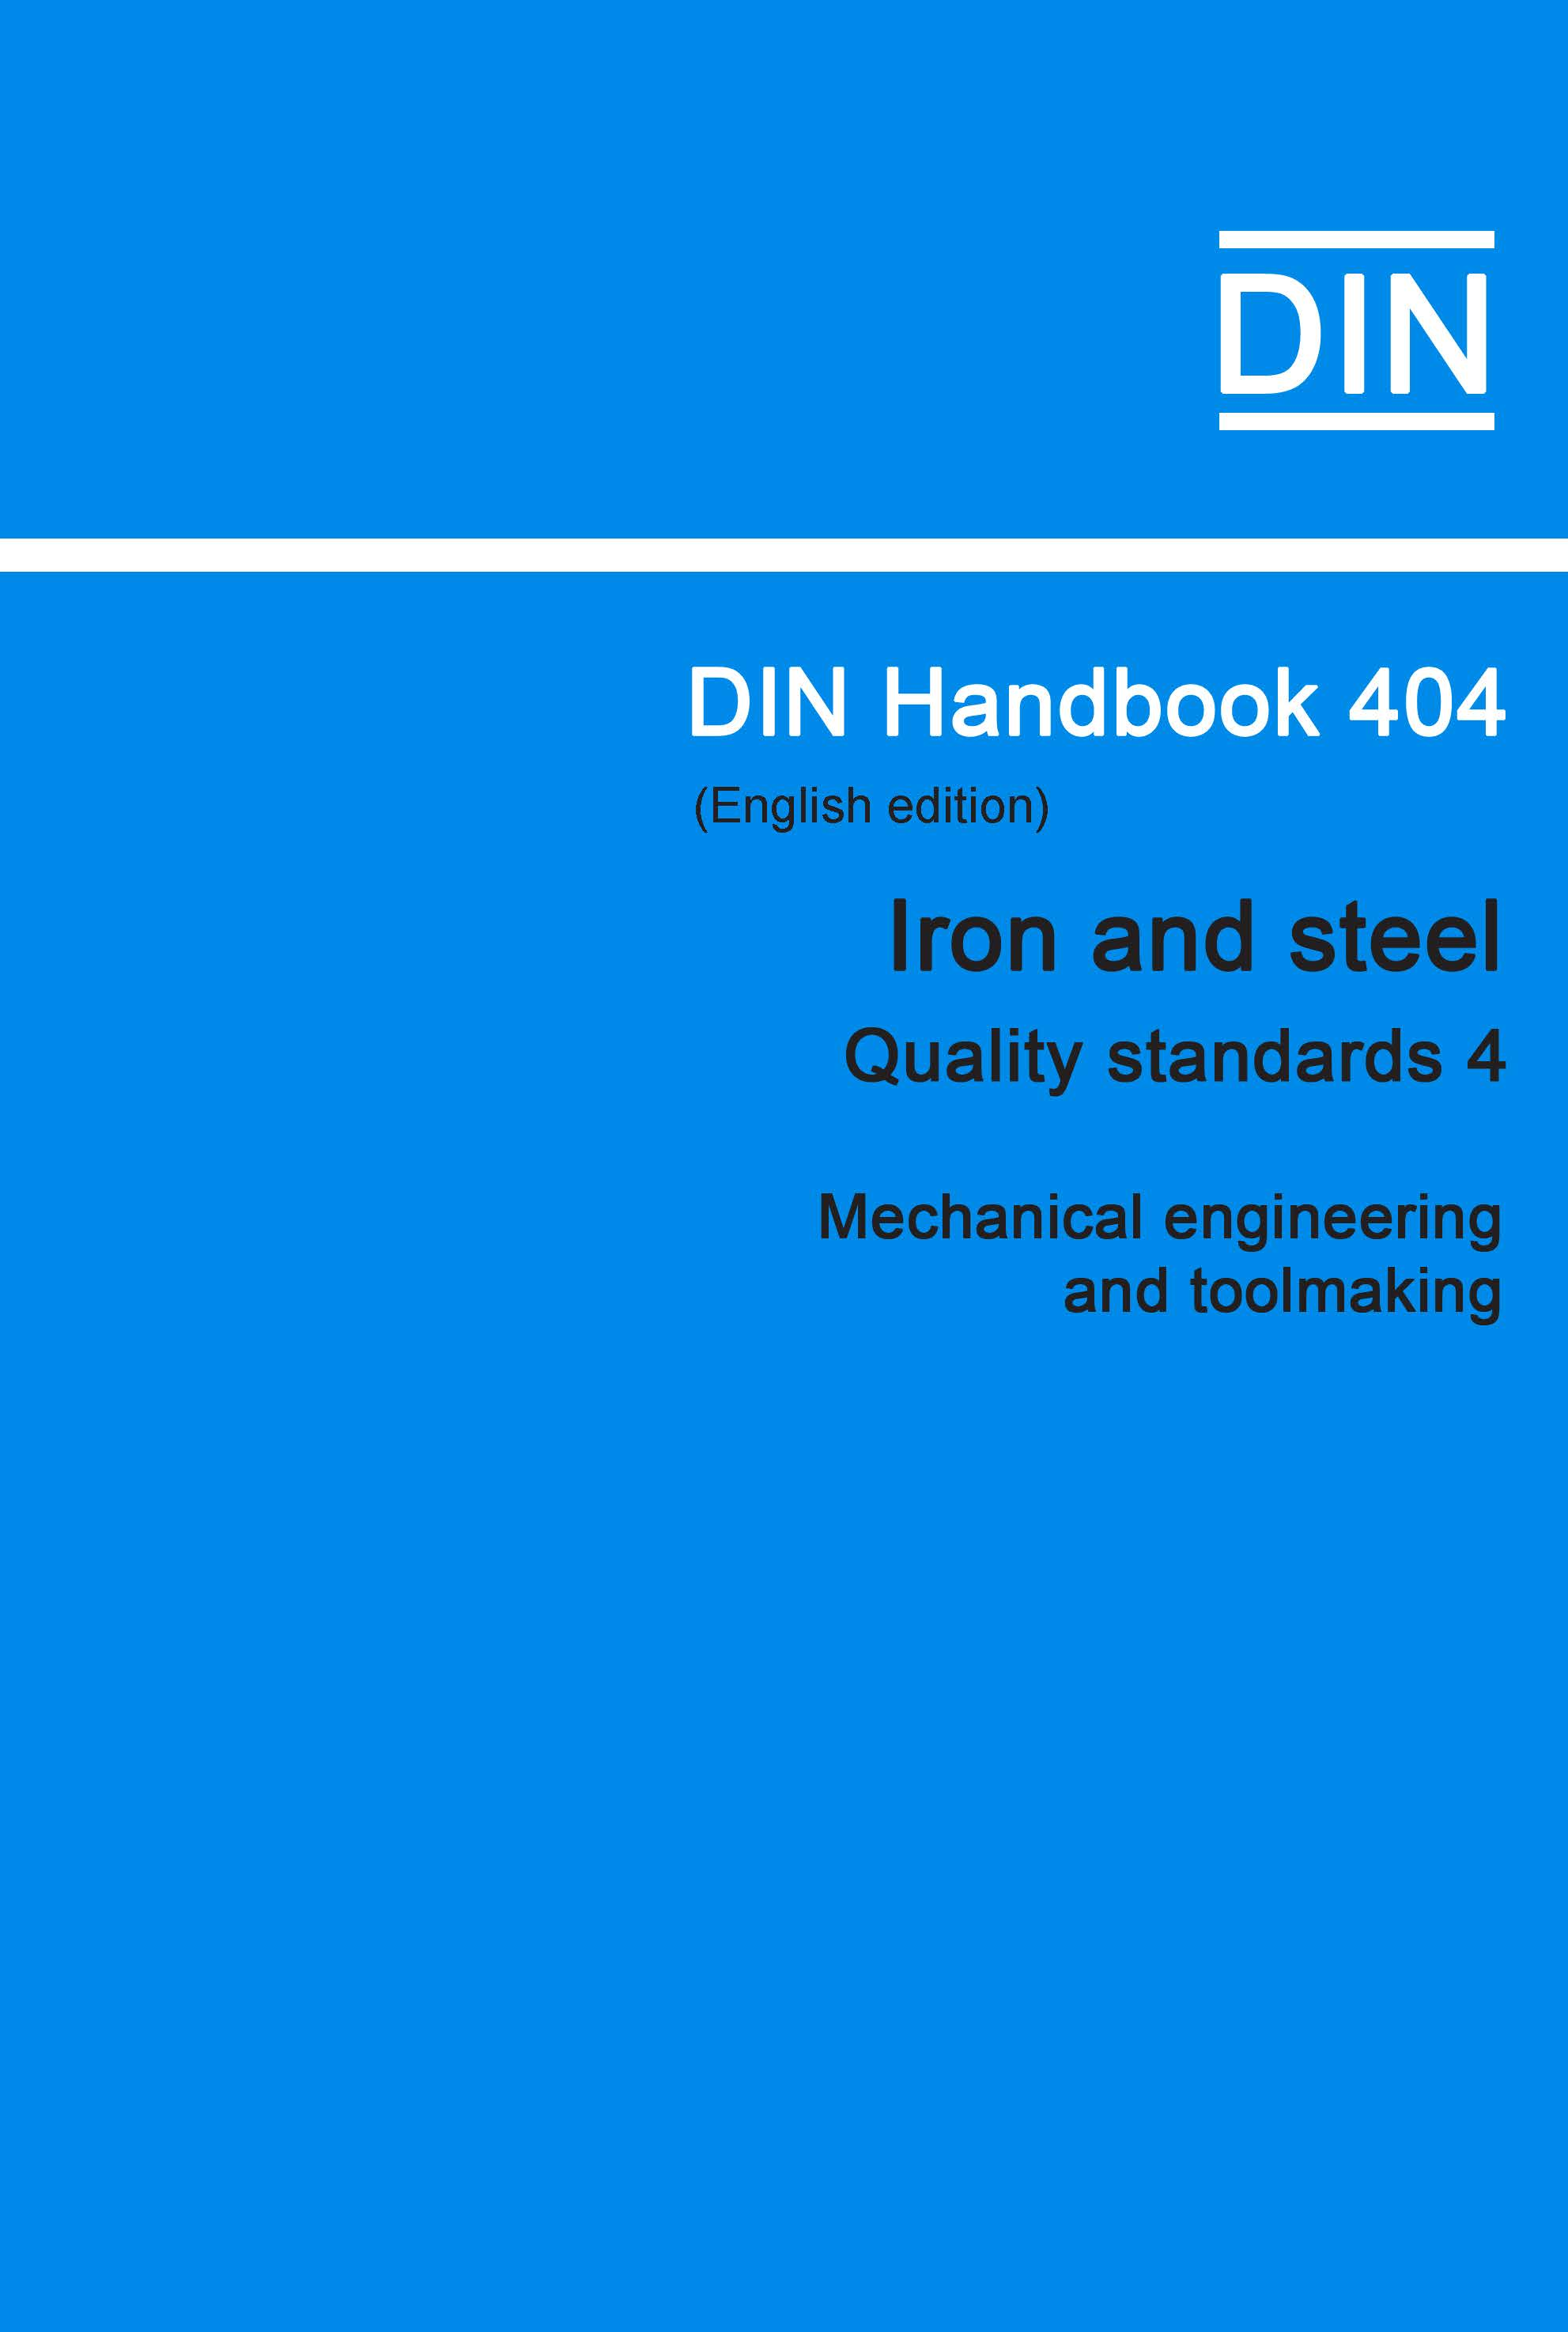 (DIN Handbook  404 Iron And Steel (Quality Standar...